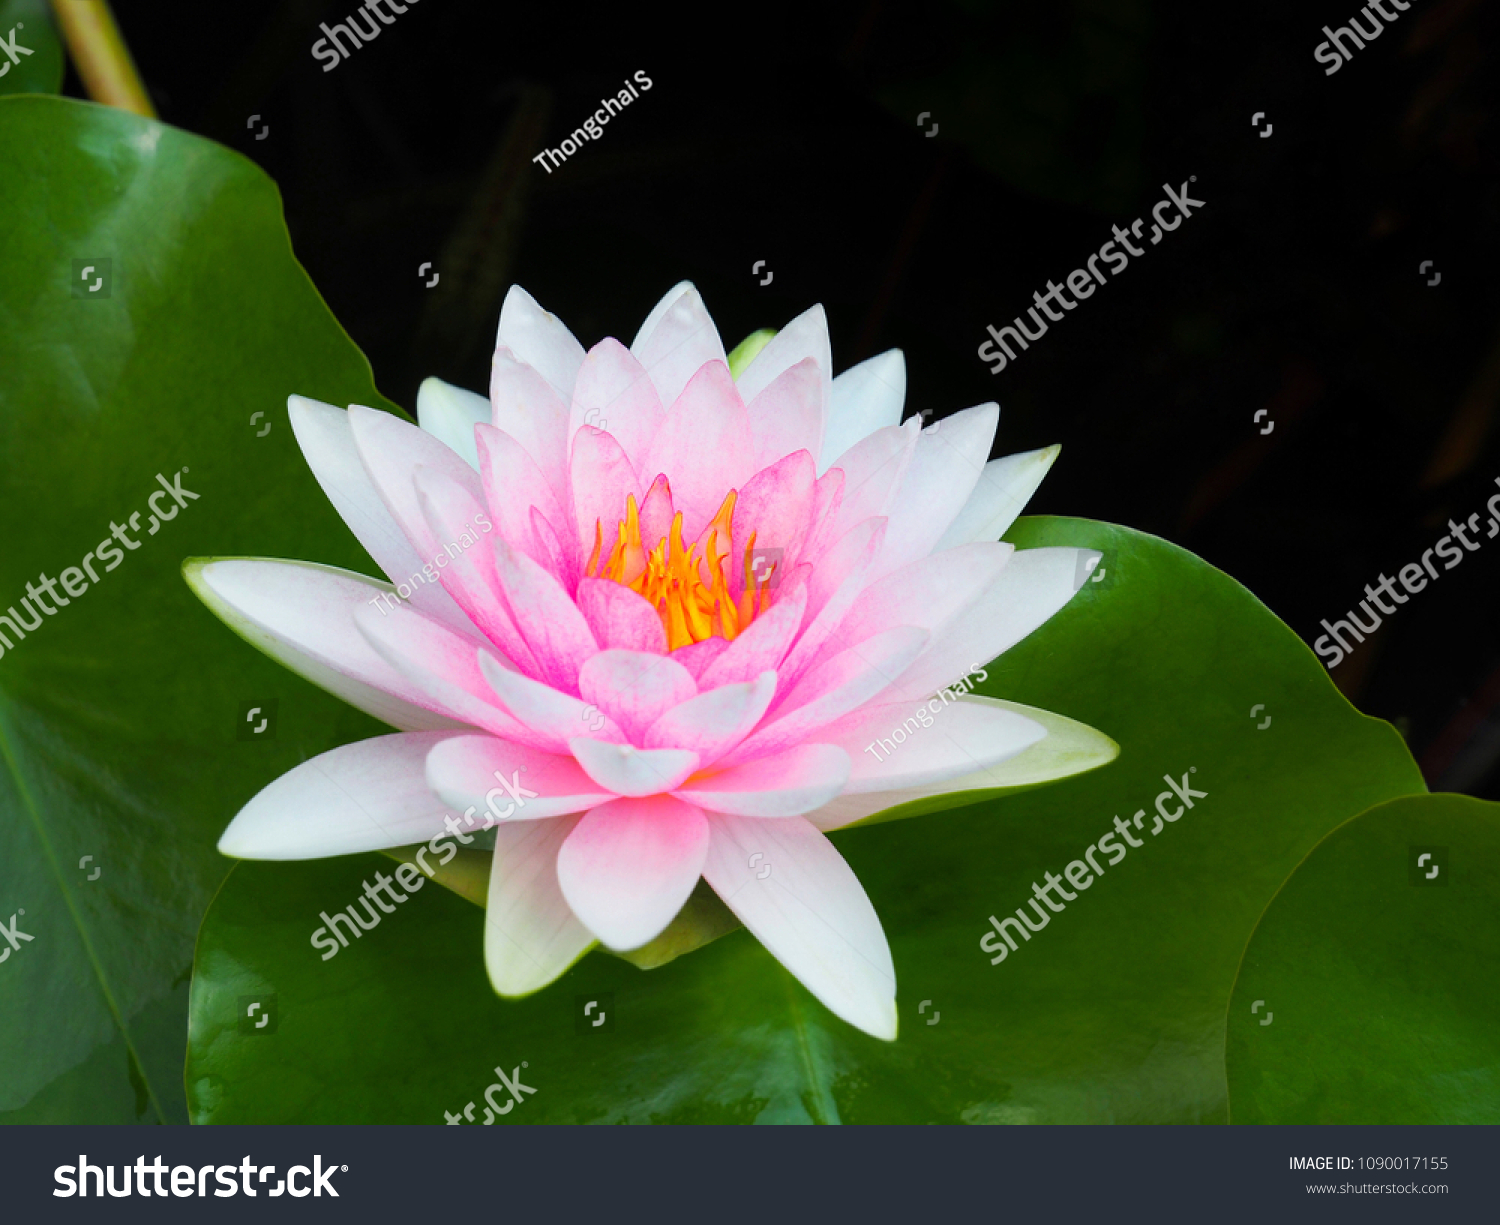 Lotus flower water lily white pink stock photo edit now 1090017155 lotus flower or water lily white and pink with green leaves beautifully blooming in the izmirmasajfo